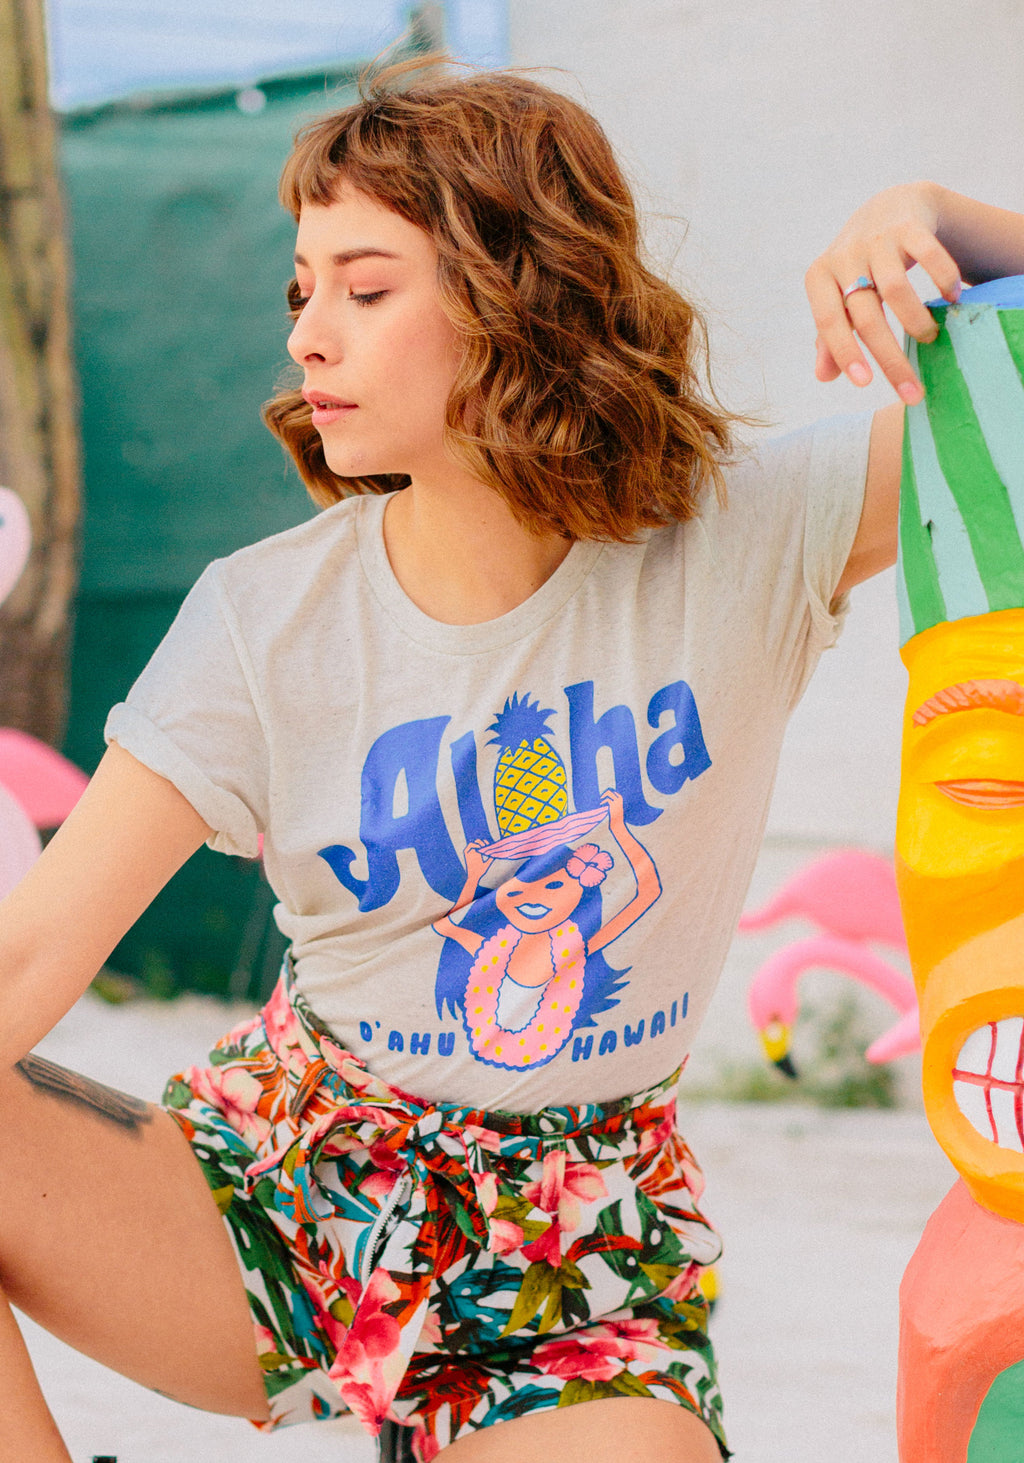 Aloha Oahu Tee / womens graphic tees / hawaii travel souvenir gifts / spring break t-shirt / pineapple island beach shirts